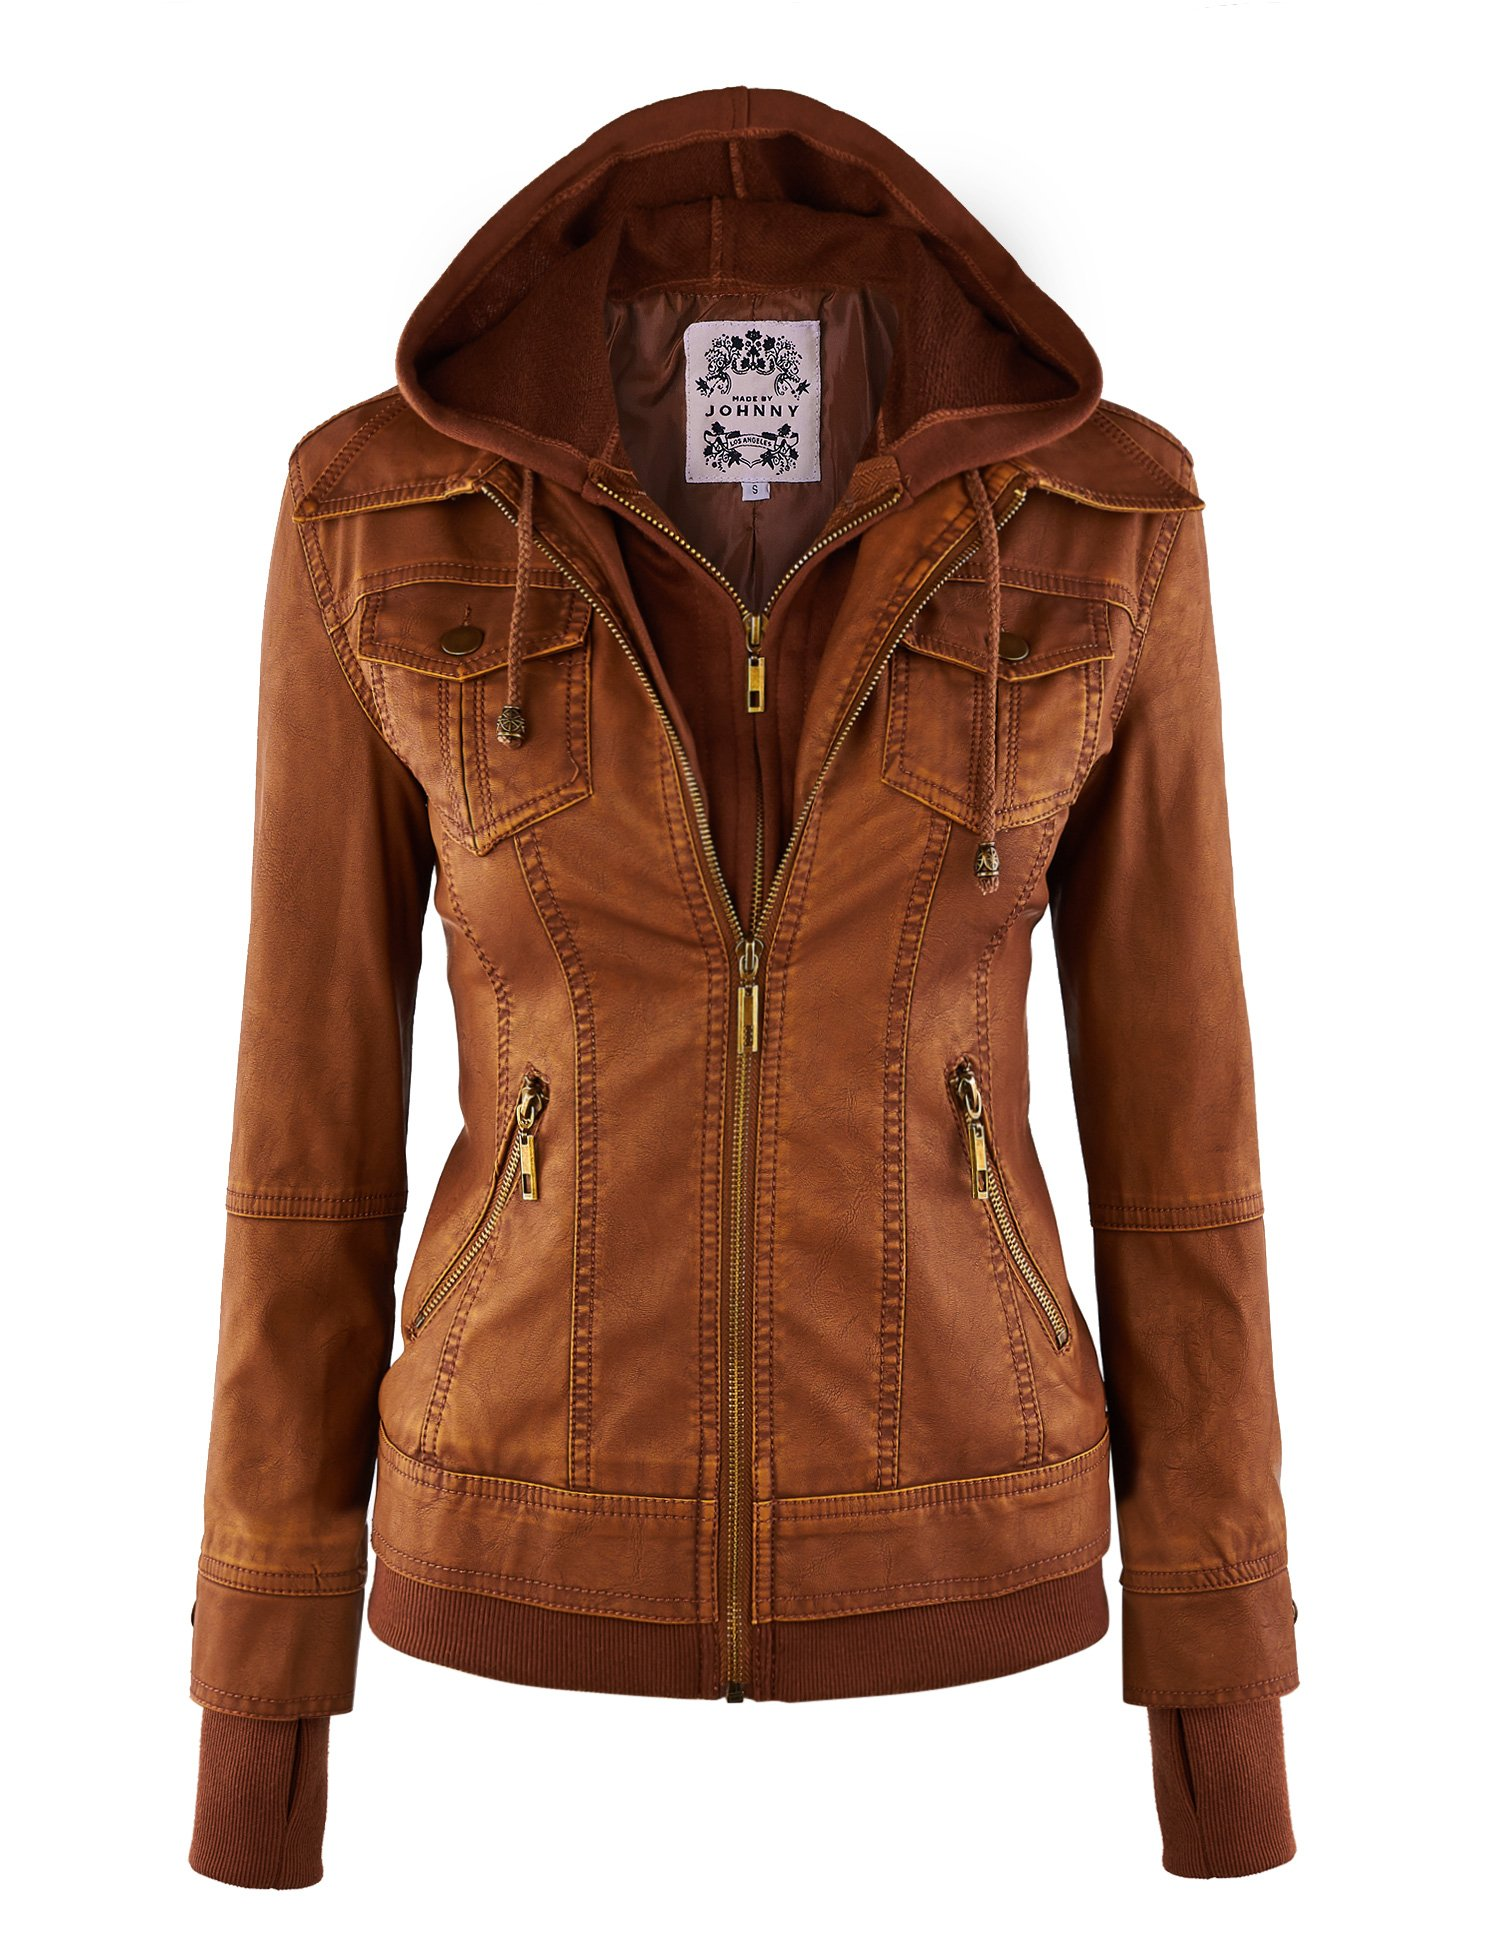 Made By Johnny MBJ WJC664 Womens Faux Leather Jacket with Hoodie L CAMEL by Made By Johnny